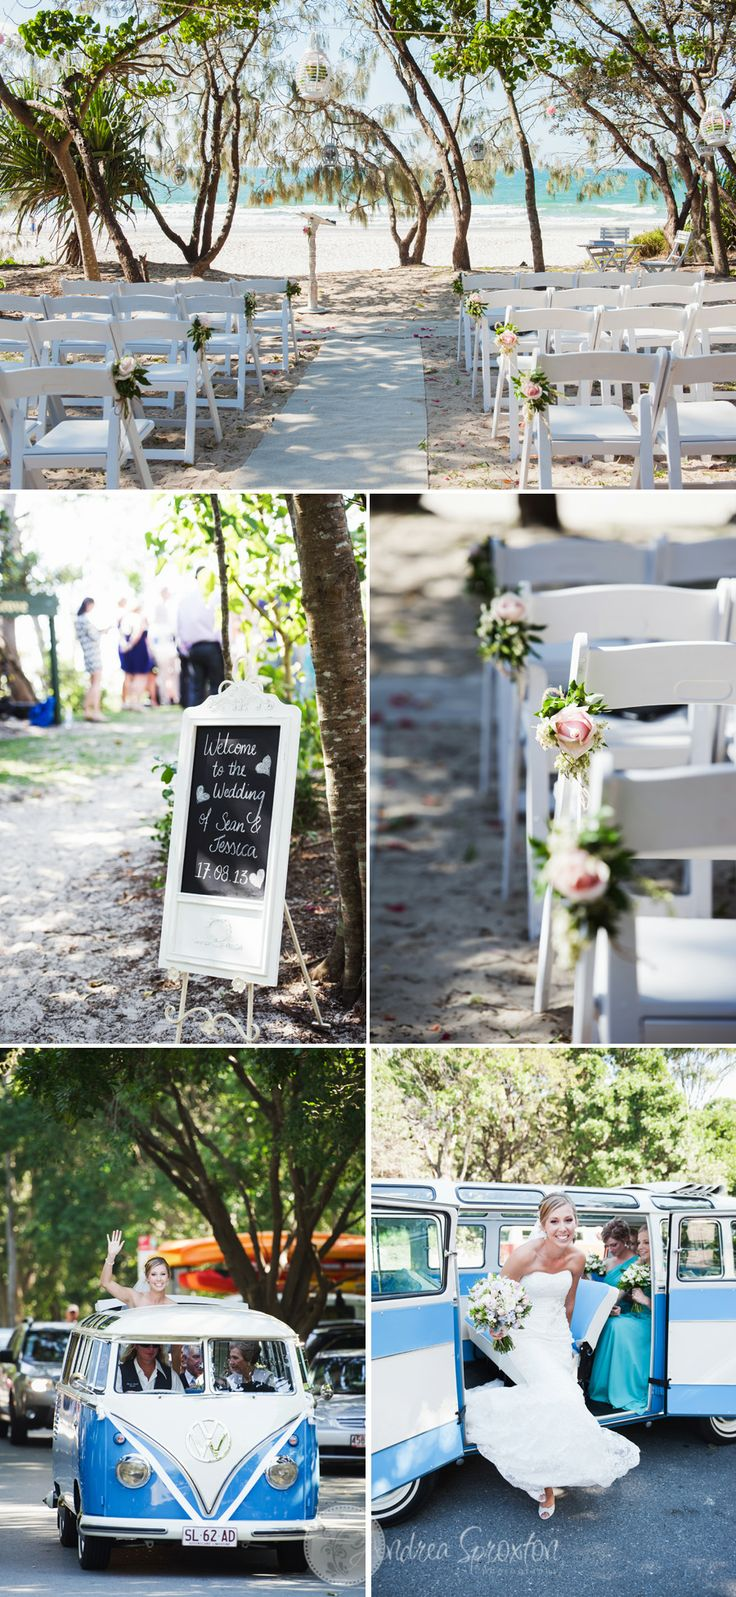 Noosa wedding photographers | Sunshine Coast wedding photographers Andrea Sproxton Photography